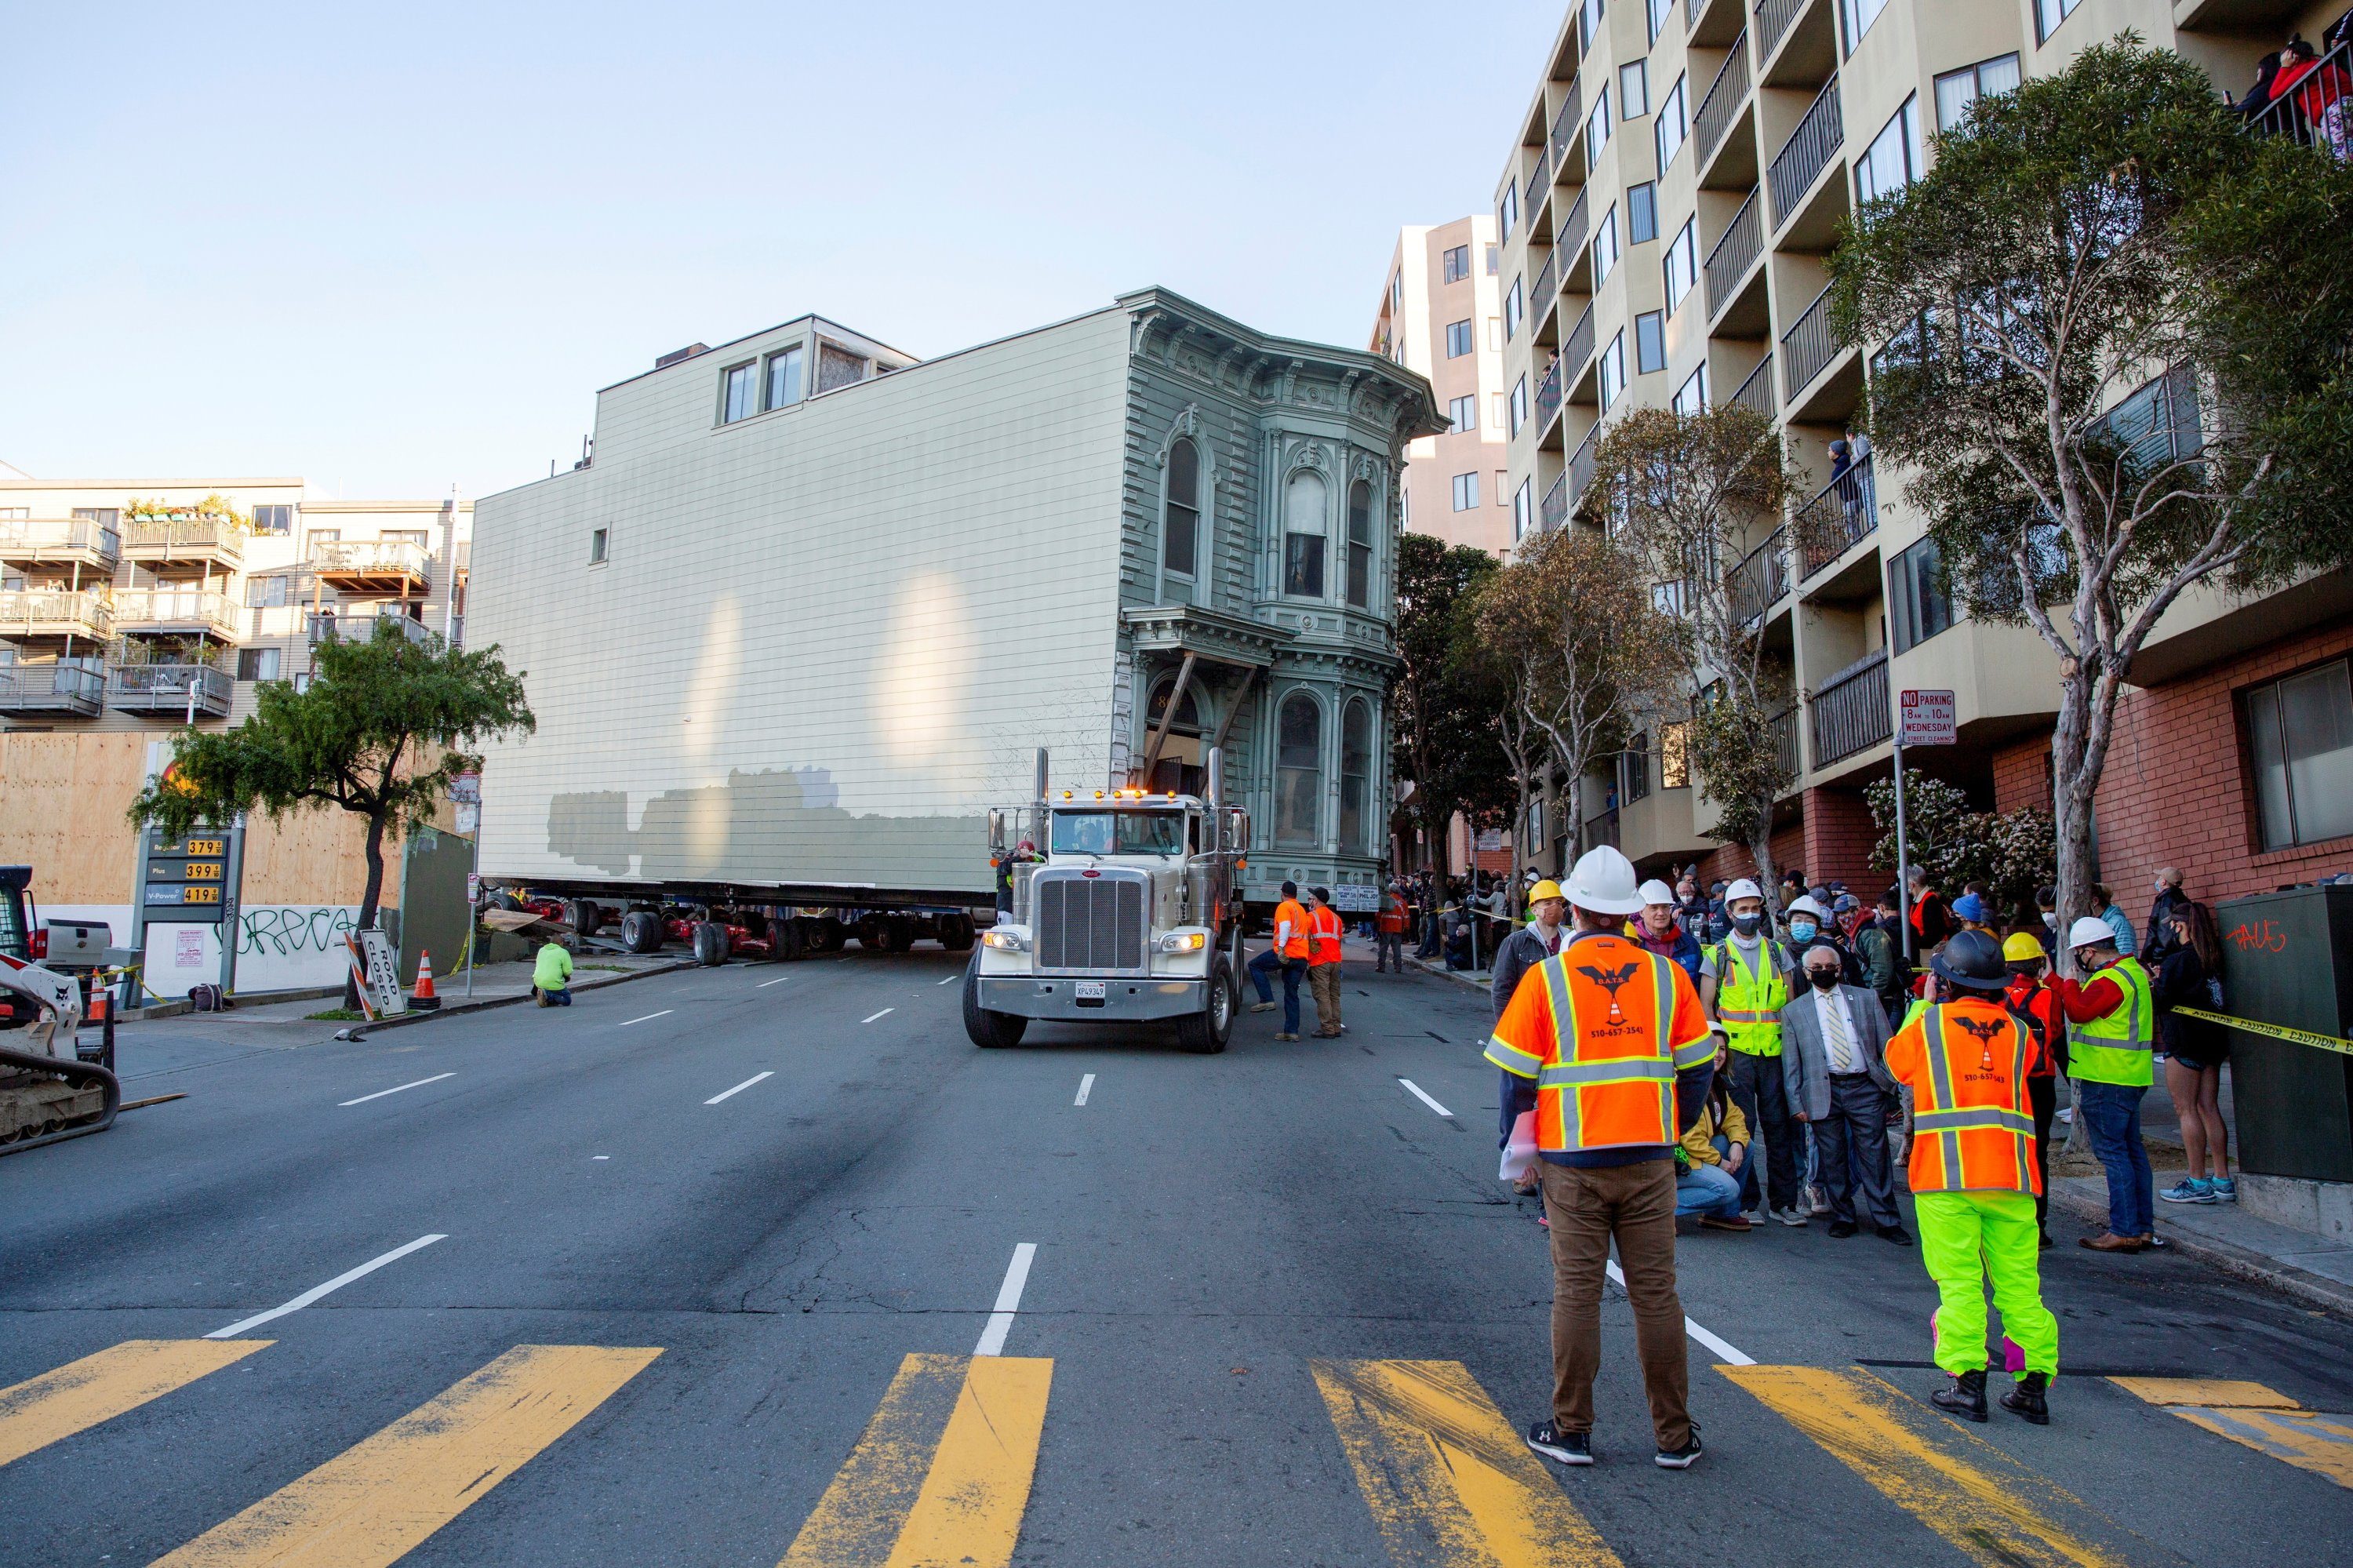 The 139-year-old Victorian house, known as the Englander House, is hoisted on a flatbed and pulled onto Franklin Street toward its new location six blocks away, as the original site is to be used to build a 48-unit, eight-story apartment building, in San Francisco, California, U.S., Feb. 21, 2021.  (Reuters Photo)